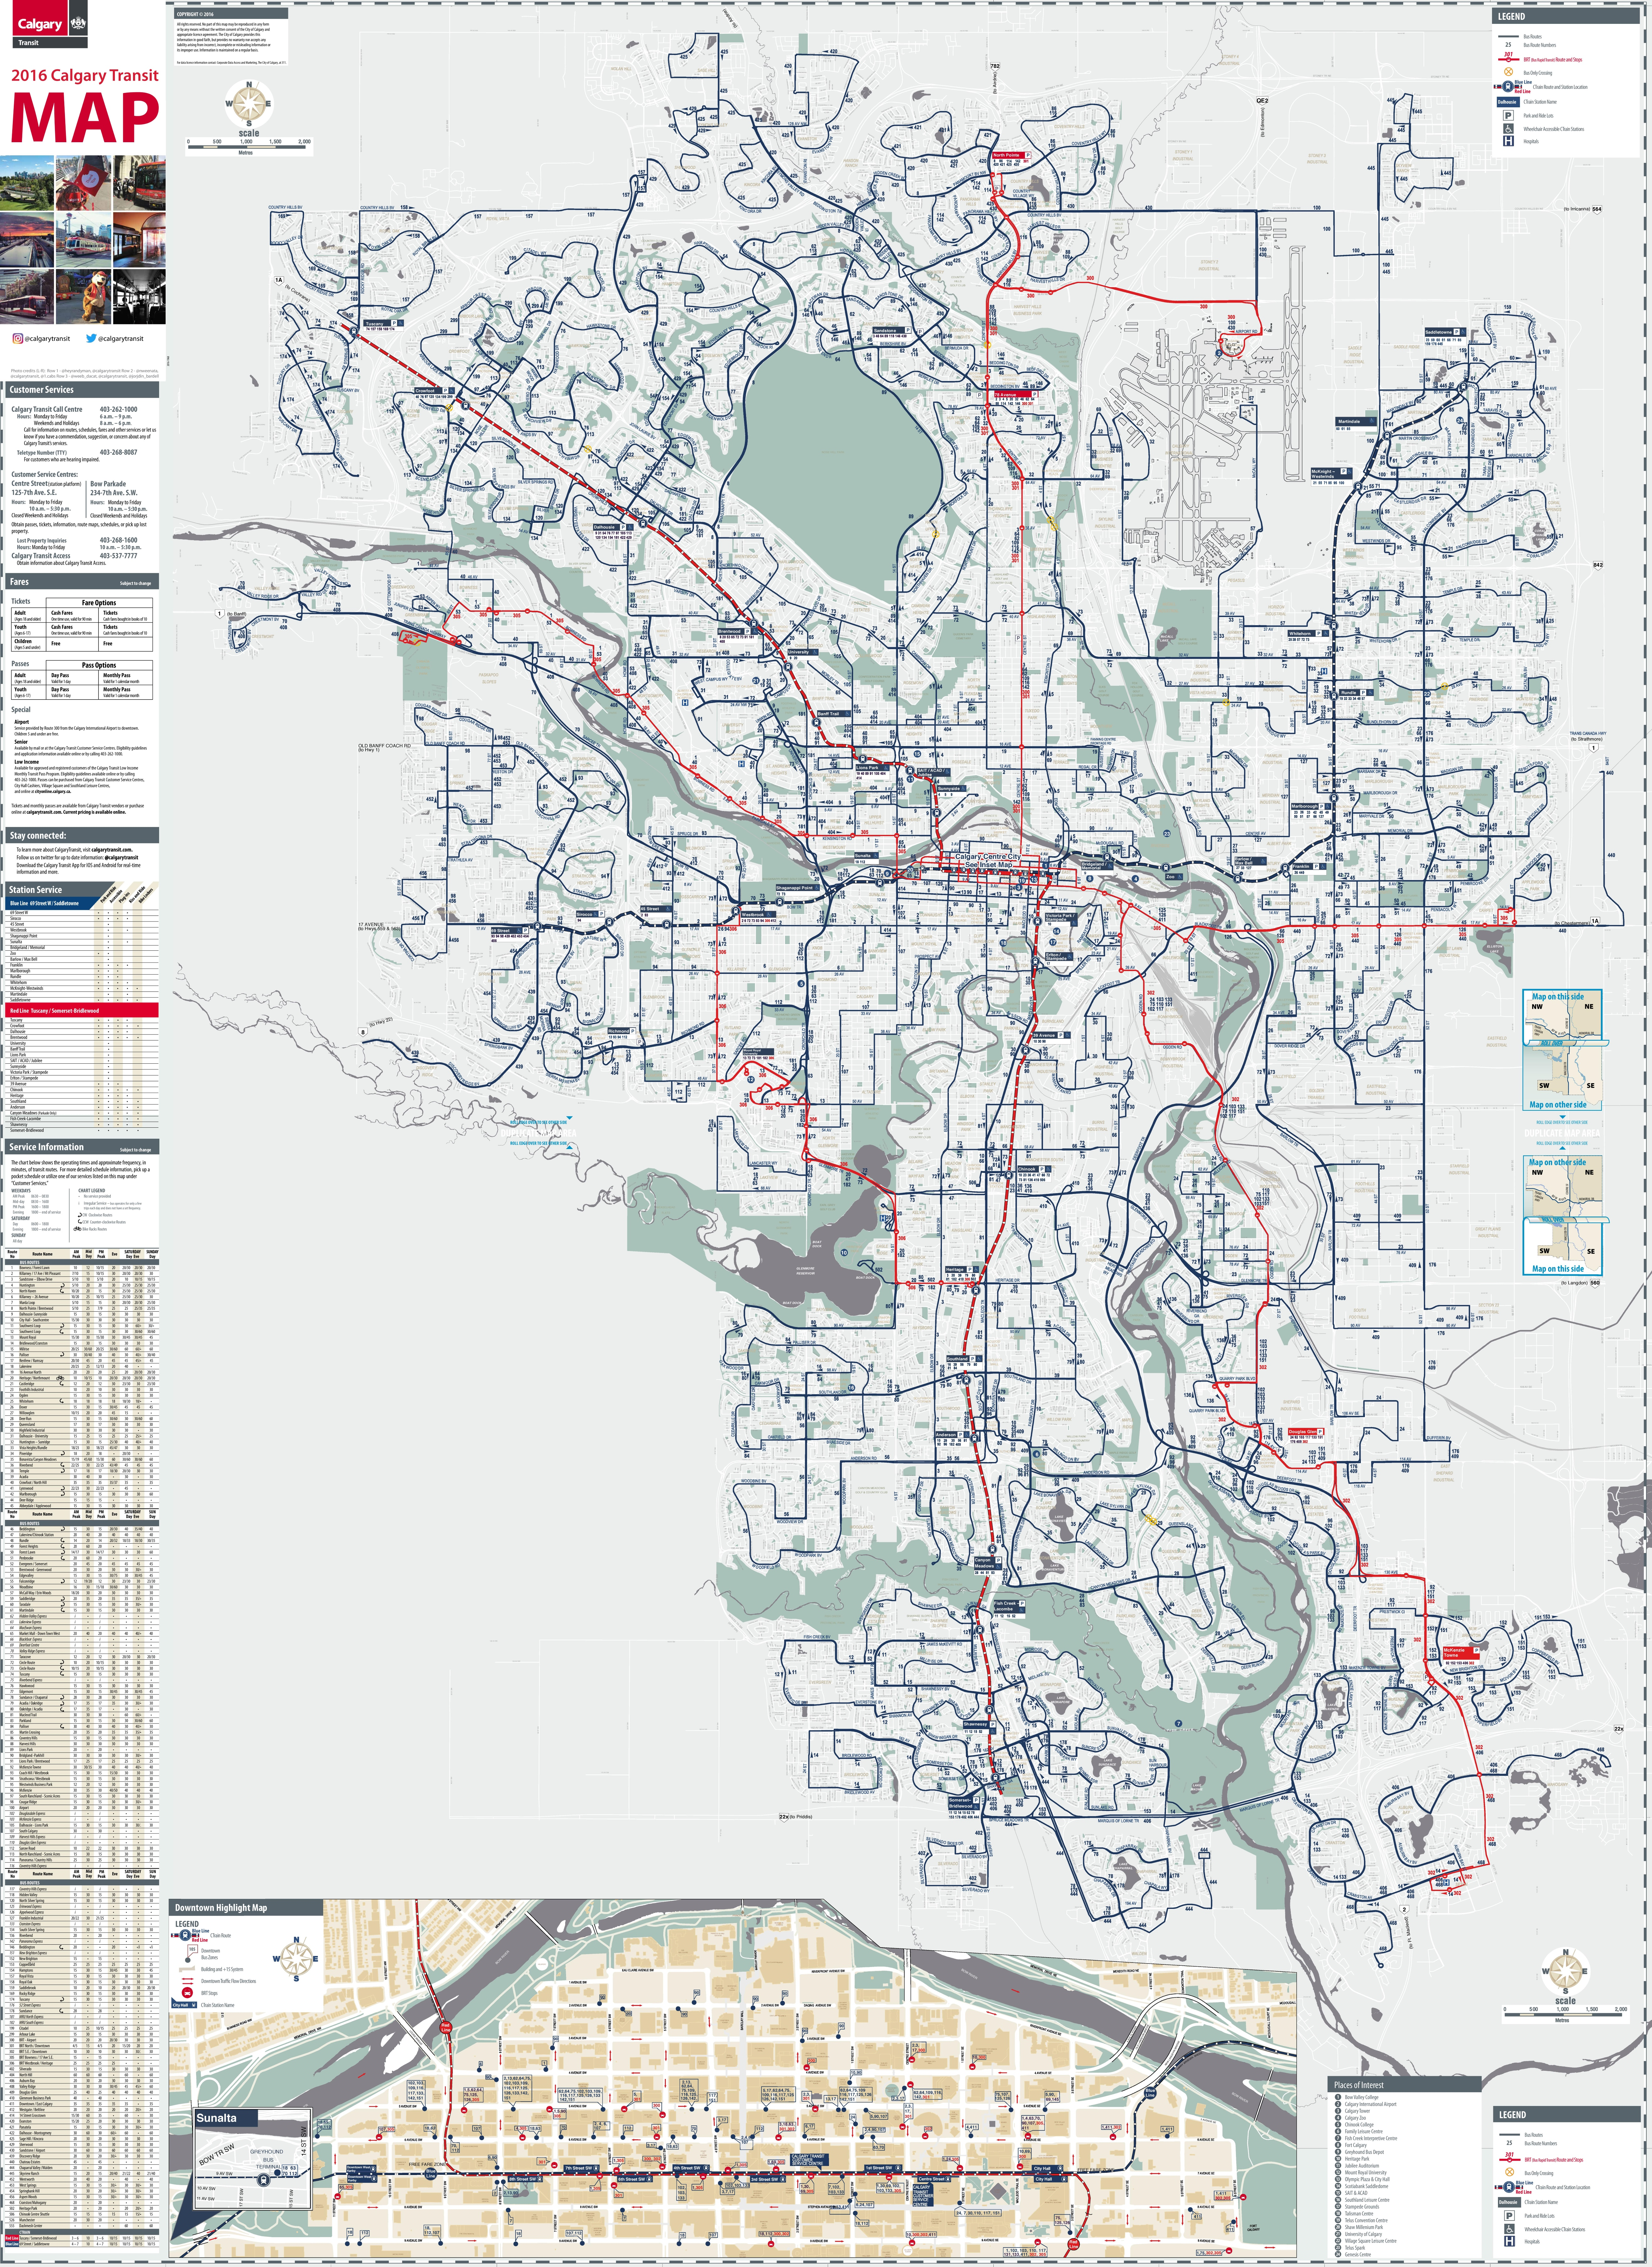 Calgary transport map